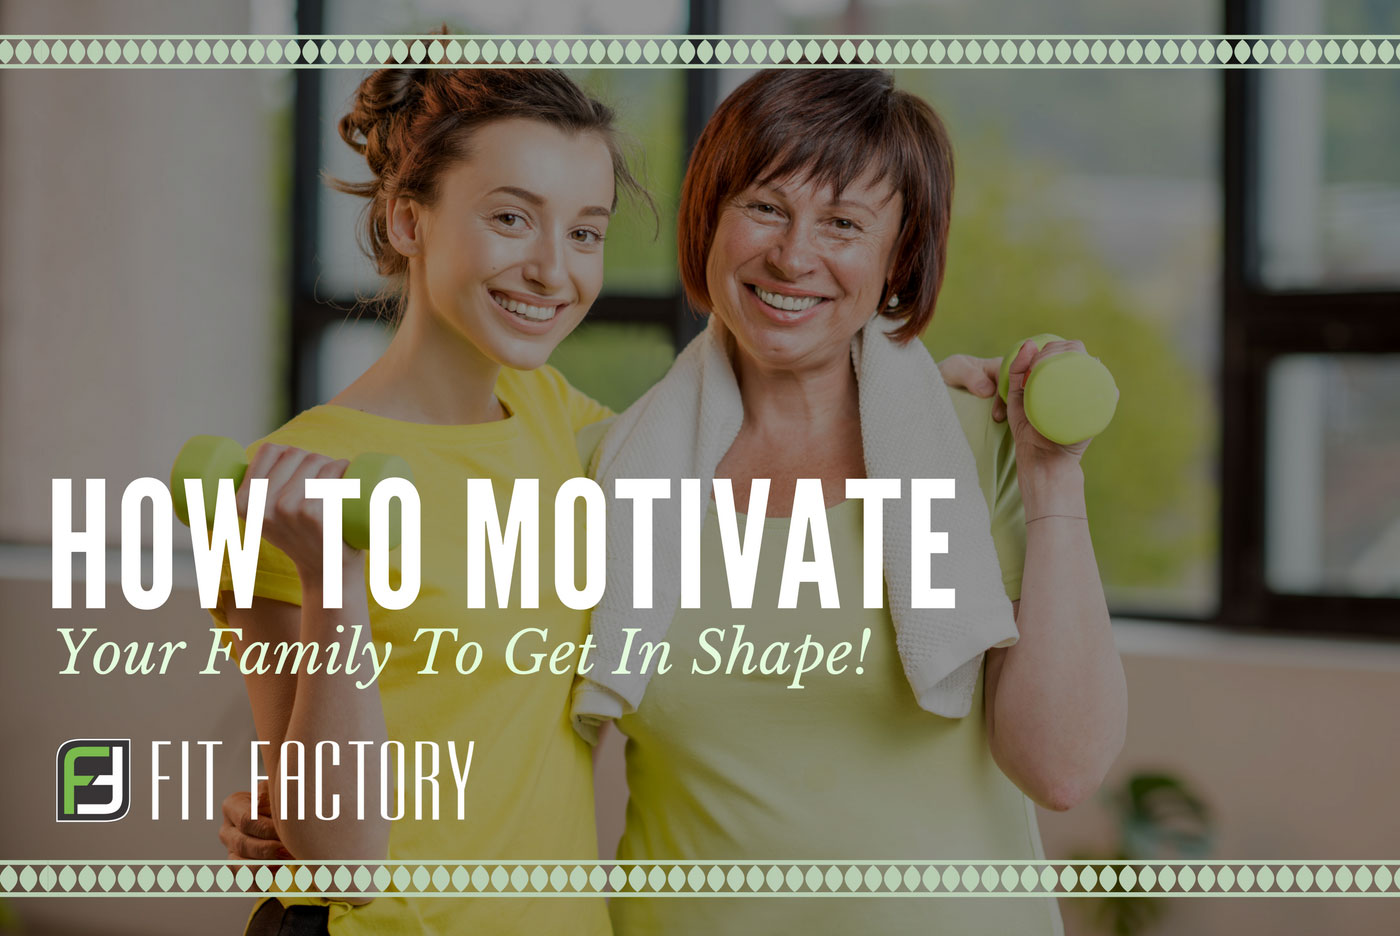 How To Motivate Your Family To Get in Shape